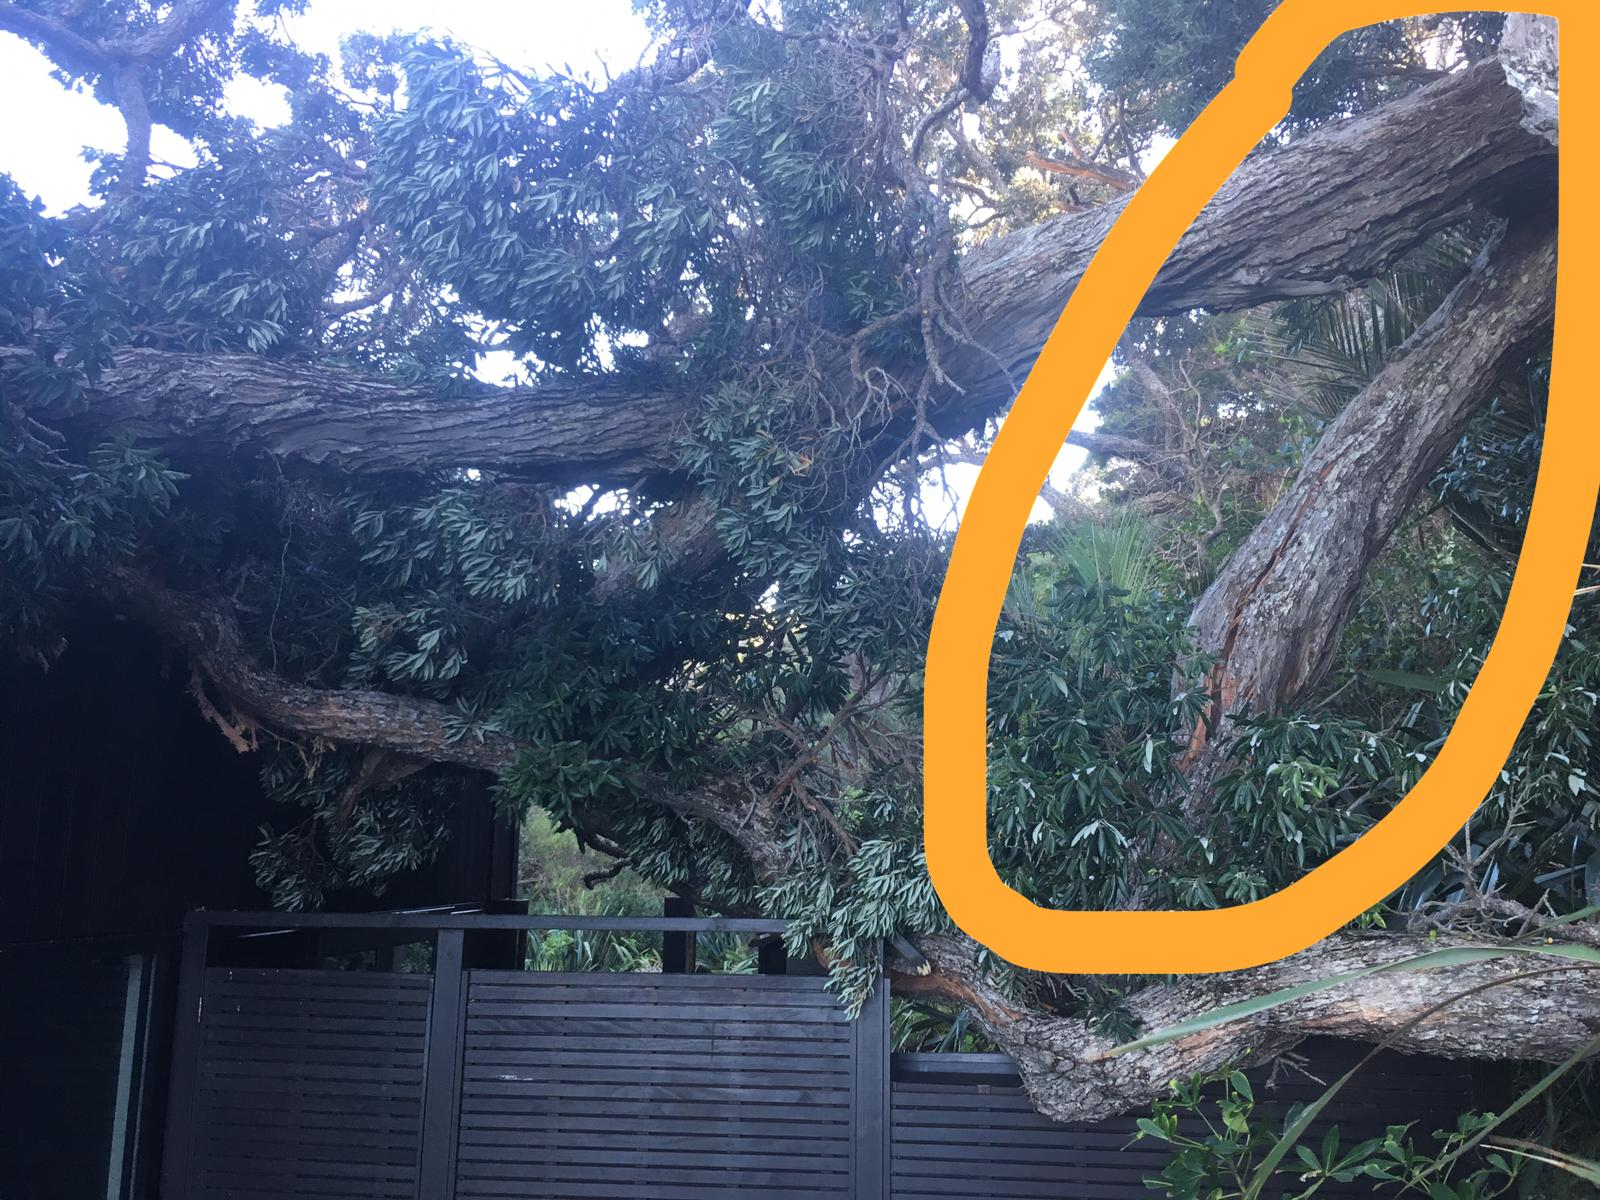 This picture shows the fallen tree with the limb we had identified that was bearing much of the weight